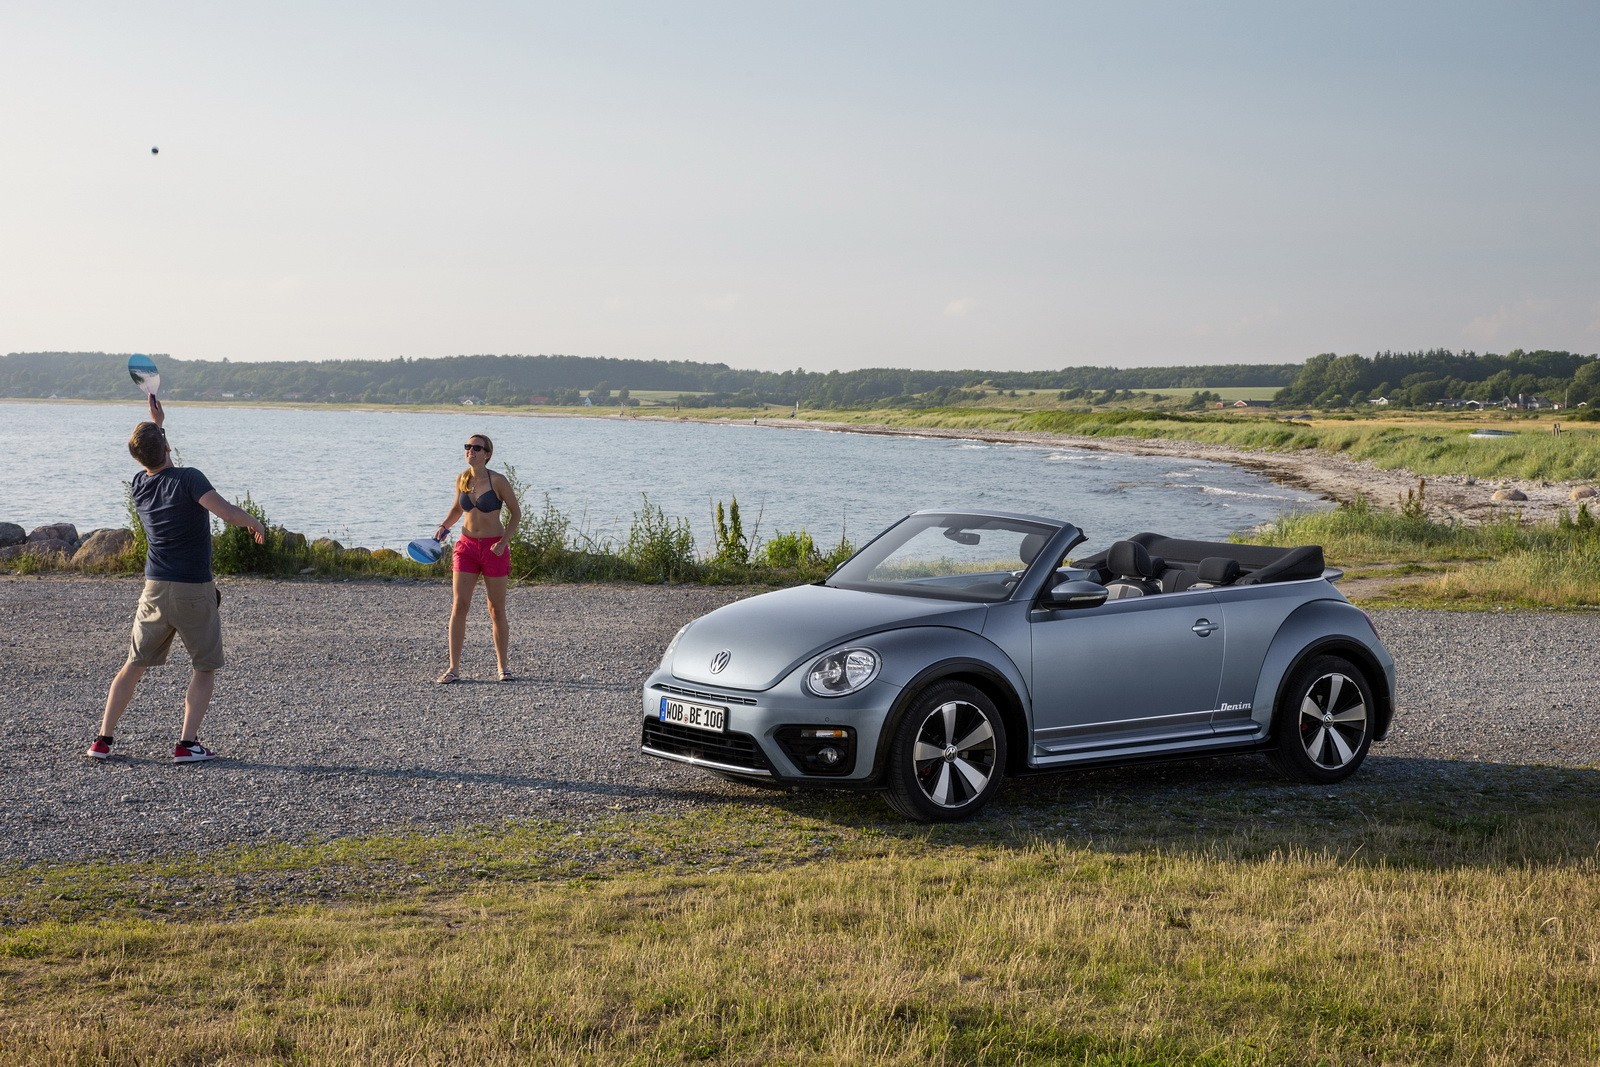 VW Beetle Dune Concept ing to Detroit autoevolution